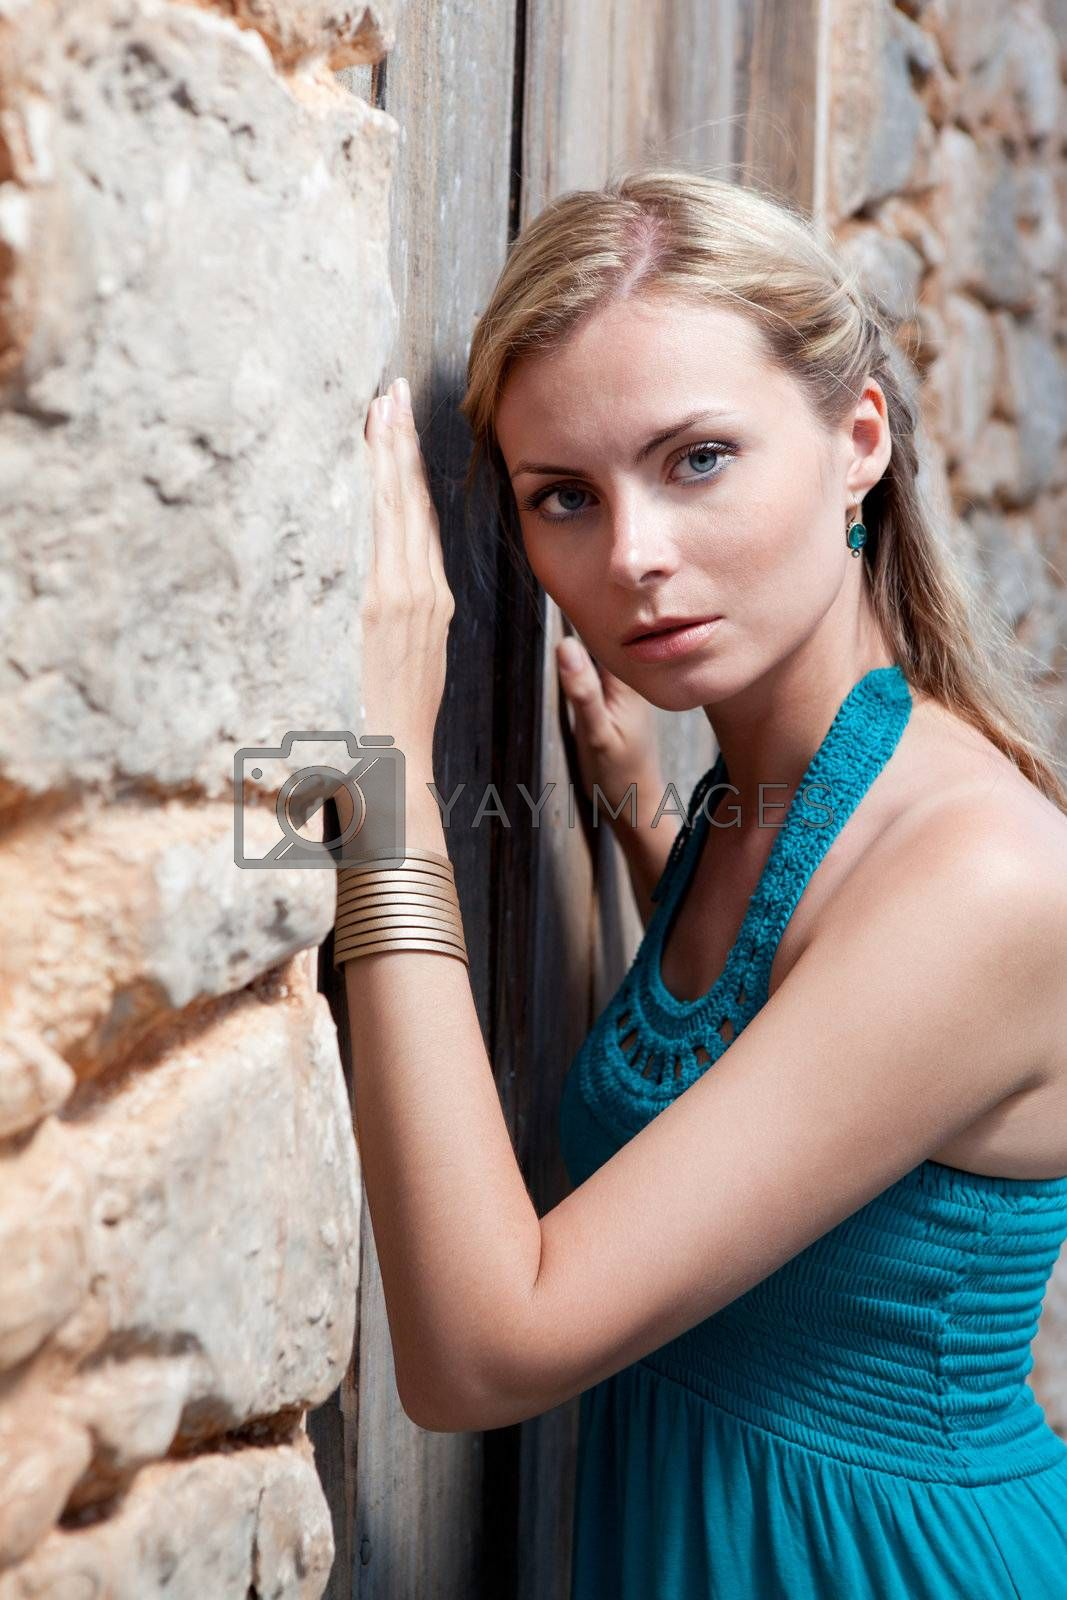 Romantic young blond woman in blue on stone wall background by SergeyAK